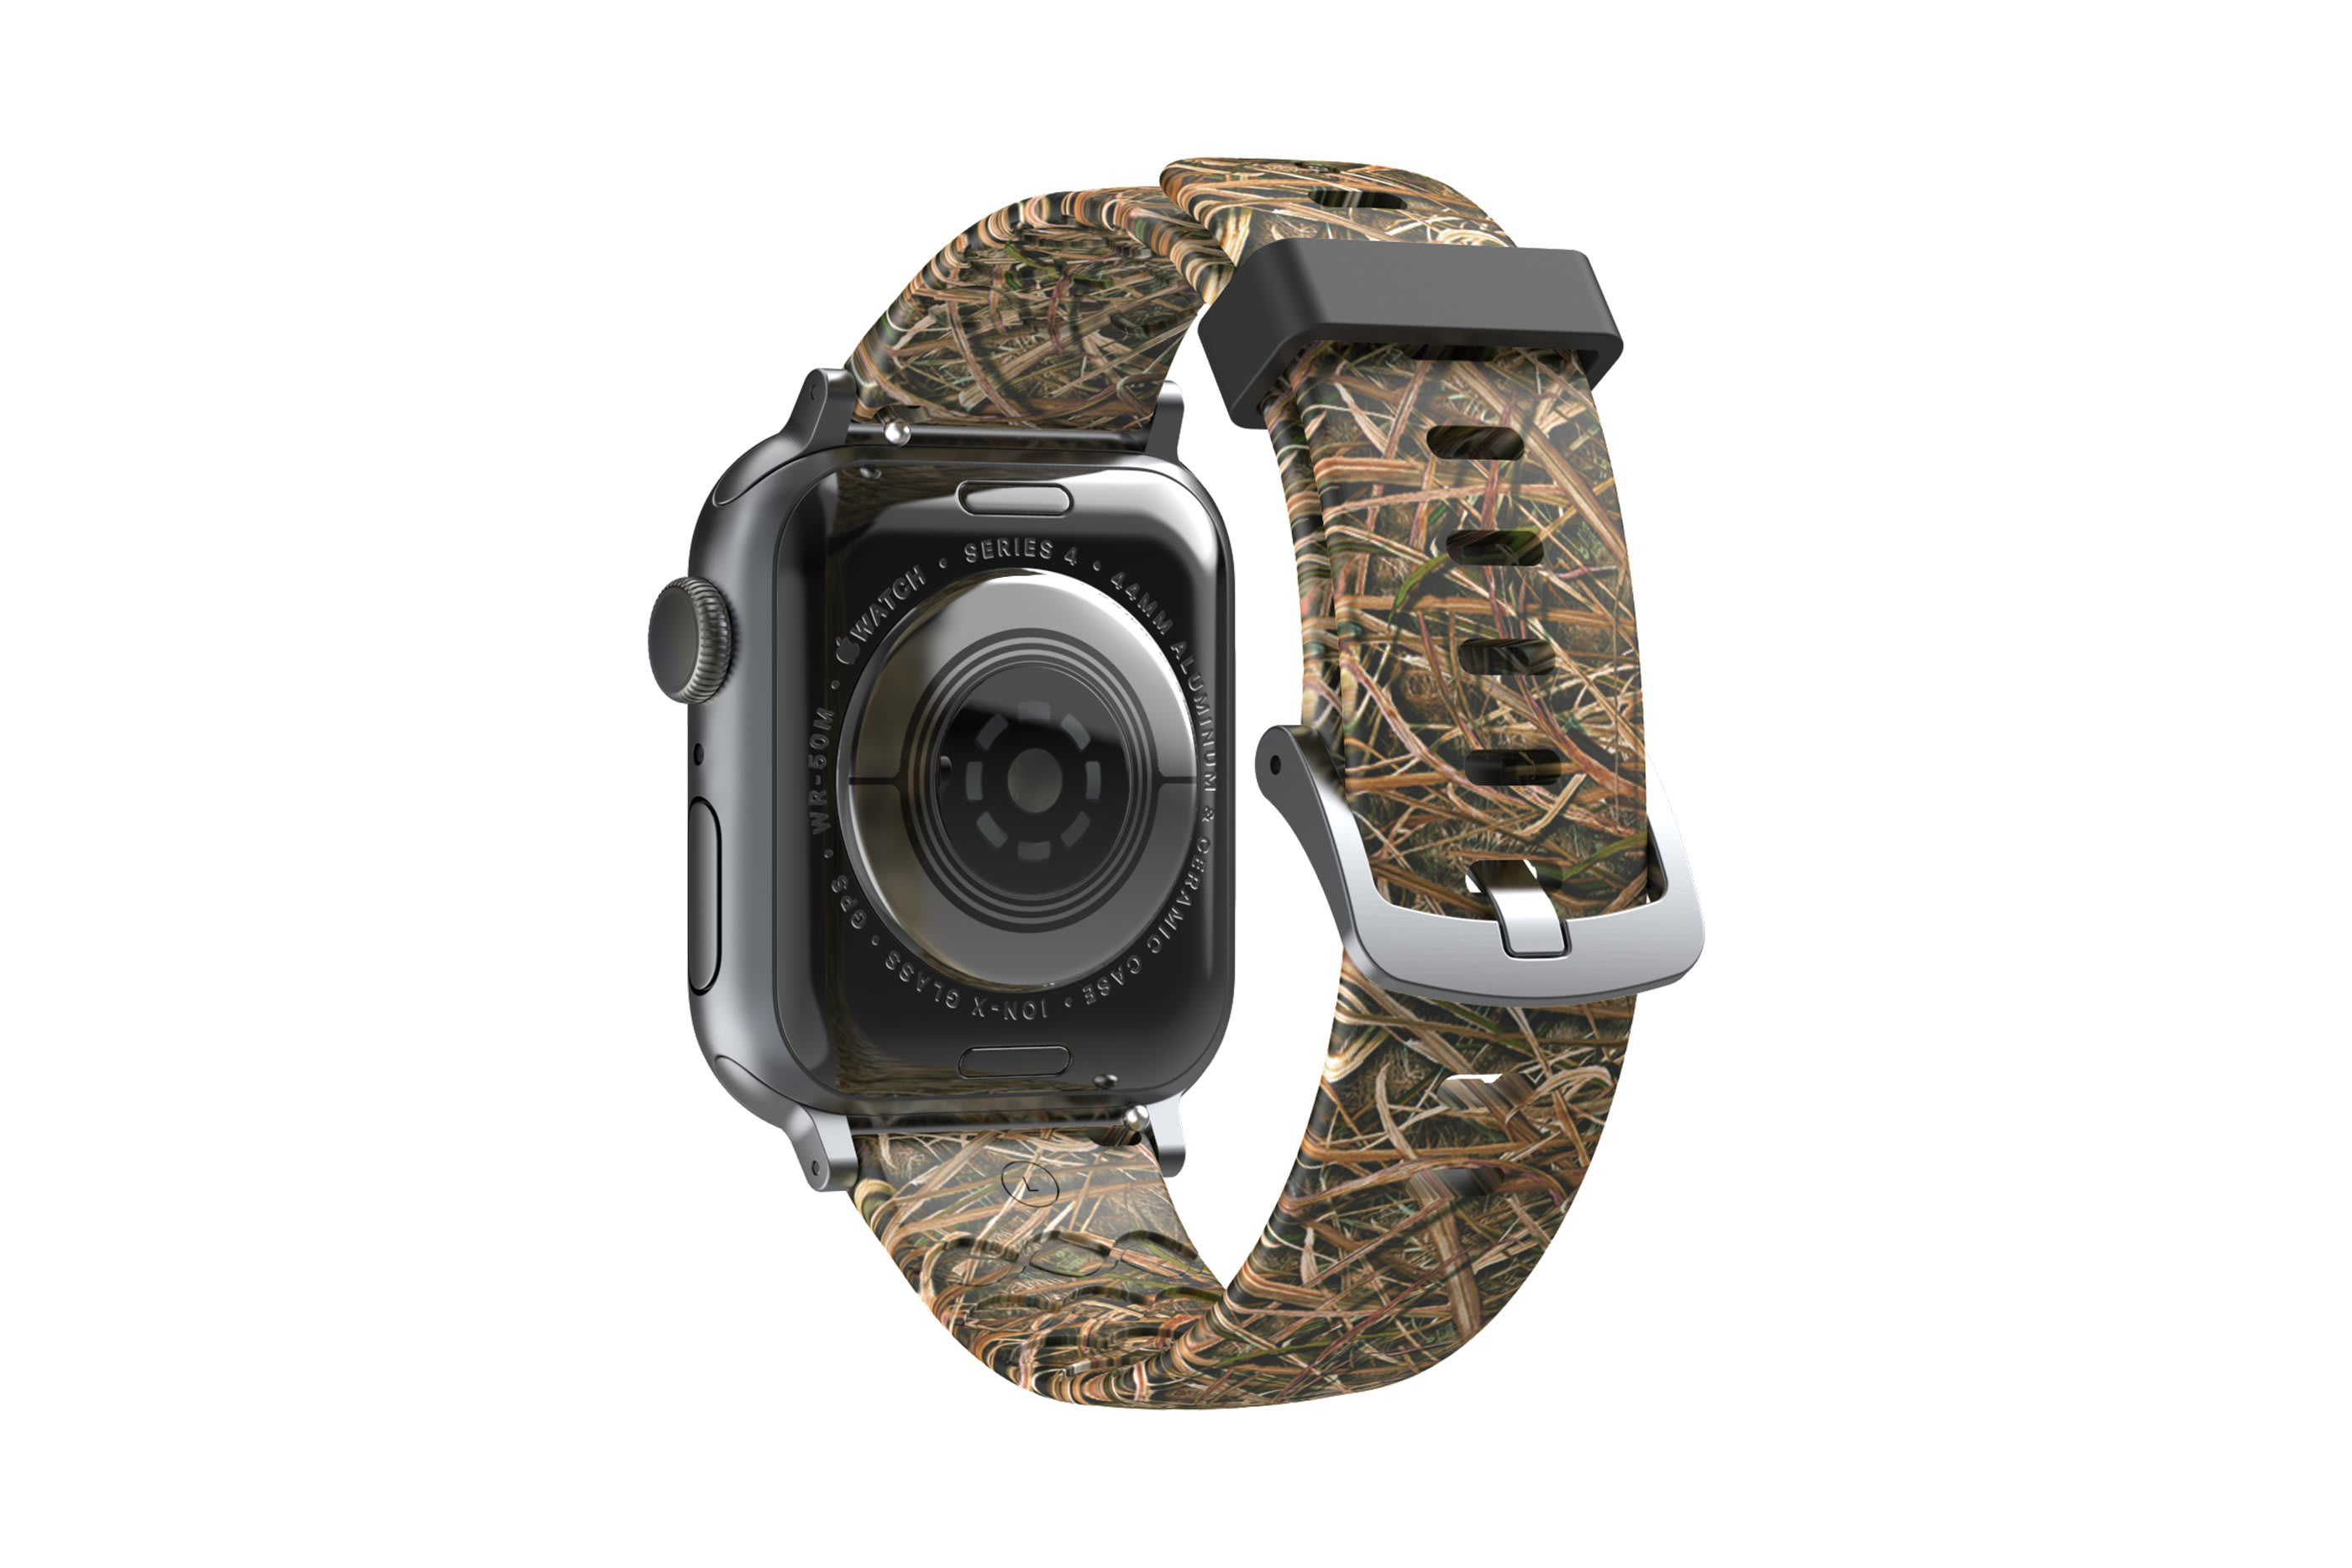 Mossy Oak Blades Apple Watch Band with silver hardware viewed from rear